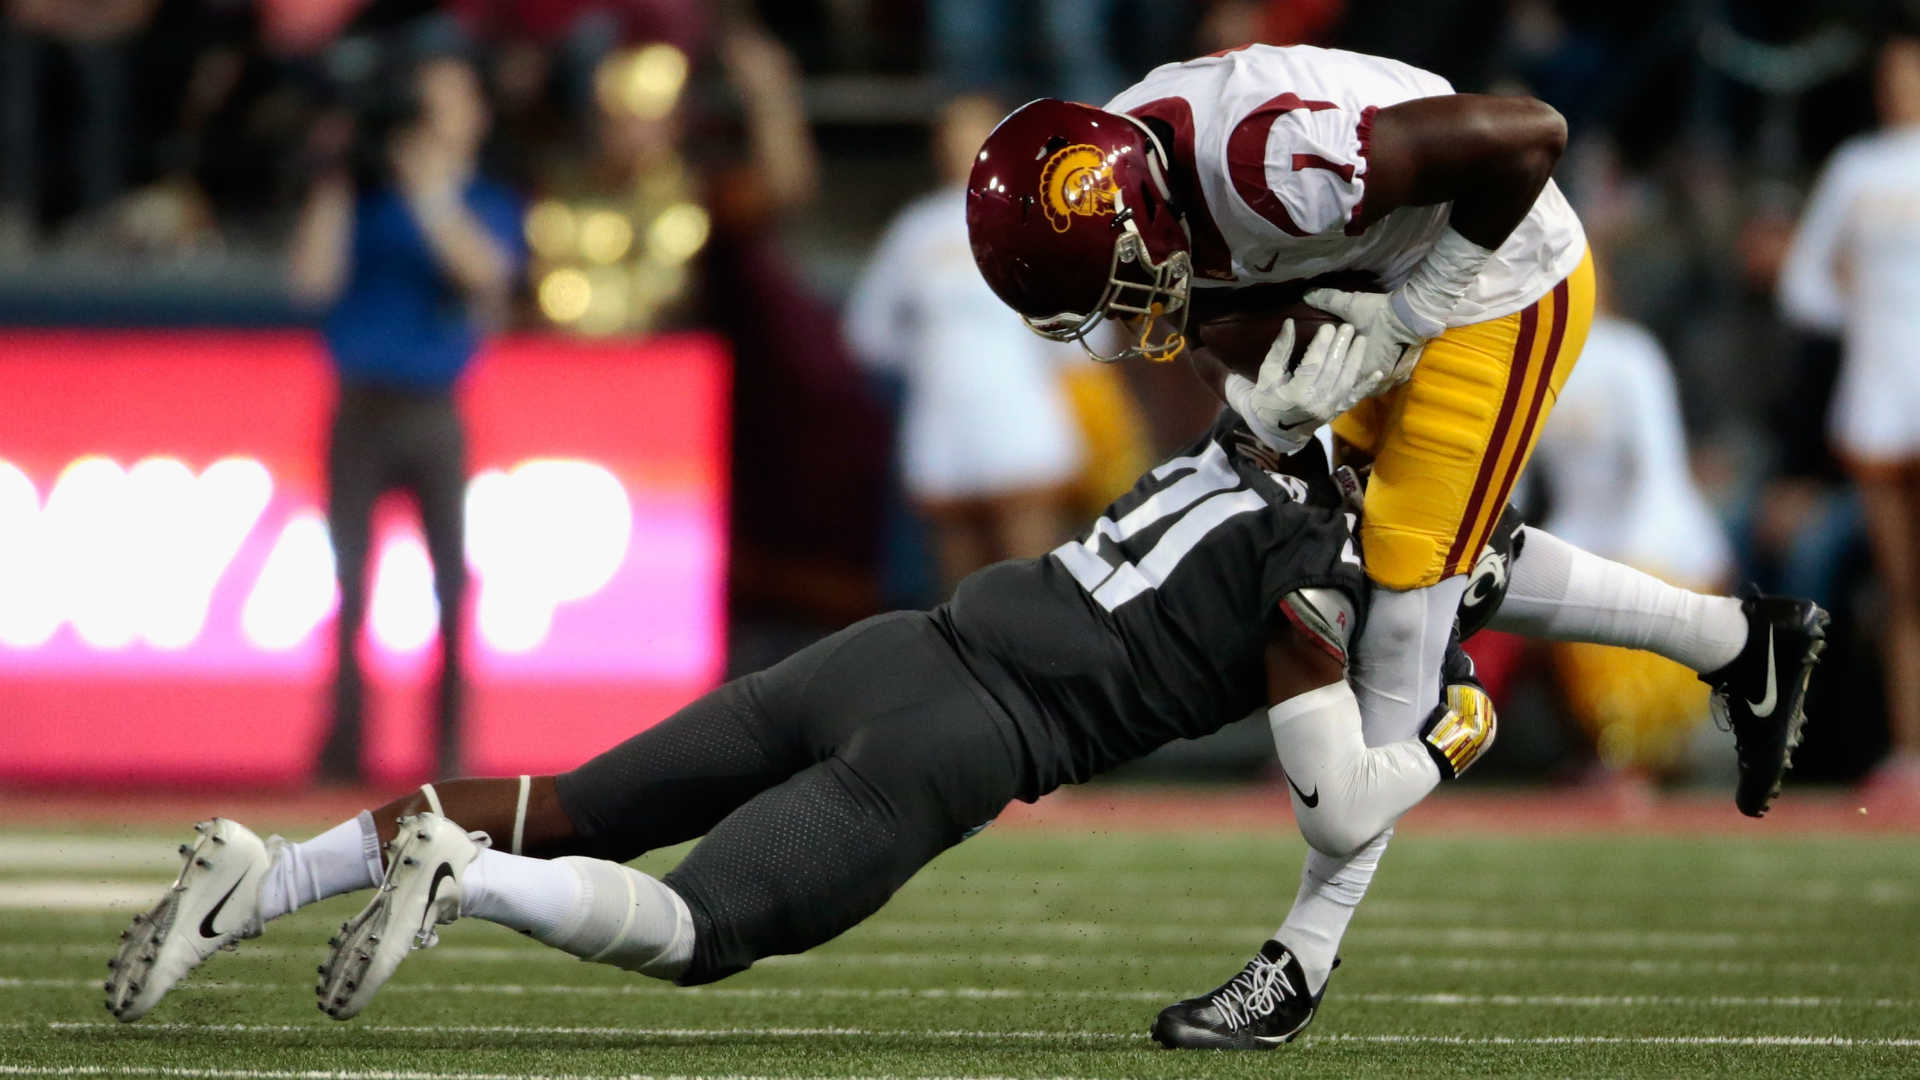 USC WR arrested for domestic violence for second time in five months